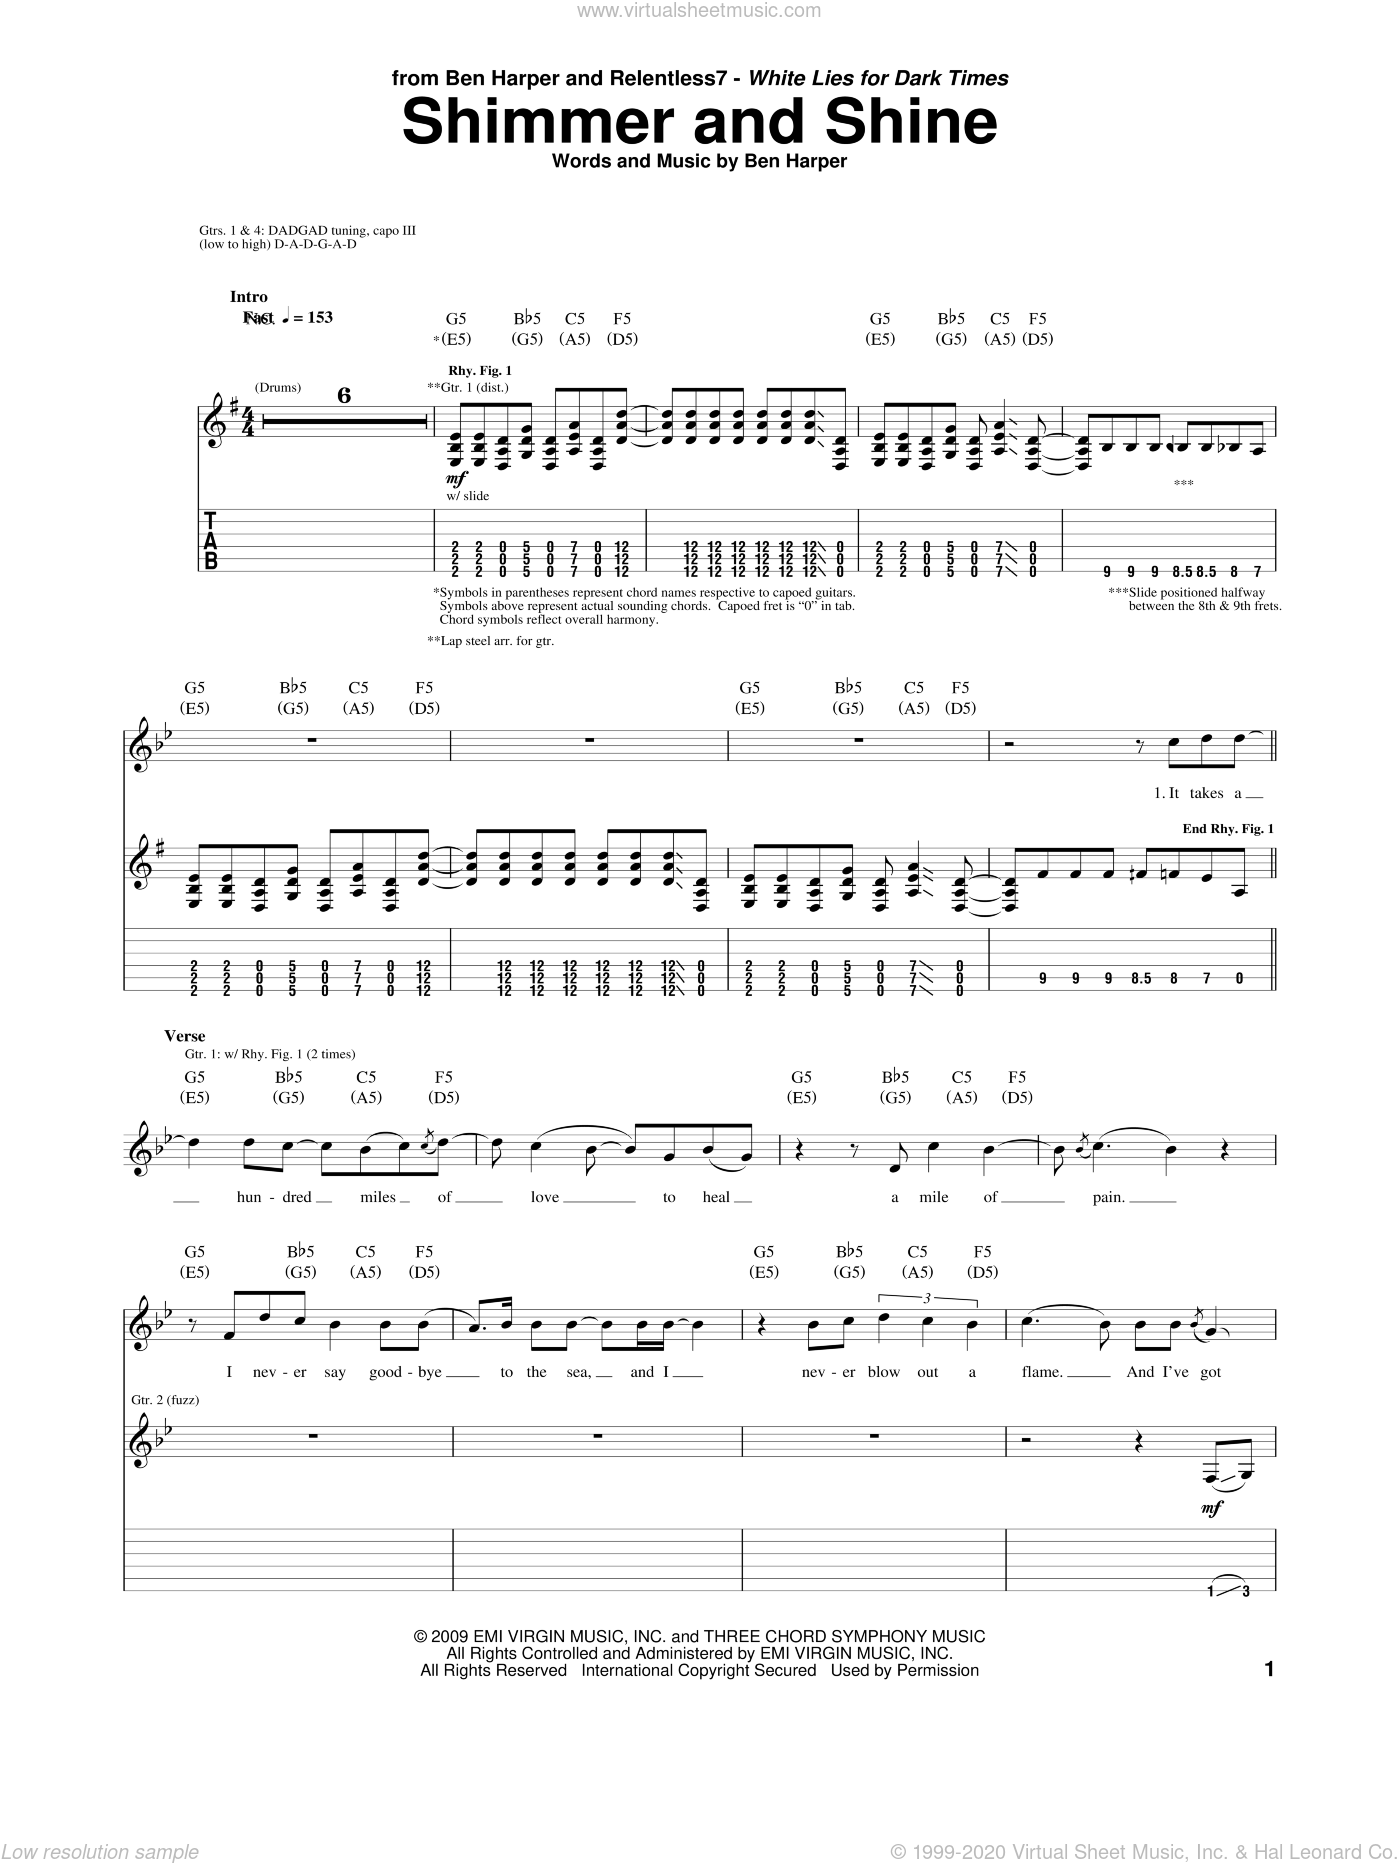 Shimmer And Shine sheet music for guitar (tablature) by Ben Harper and Relentless7